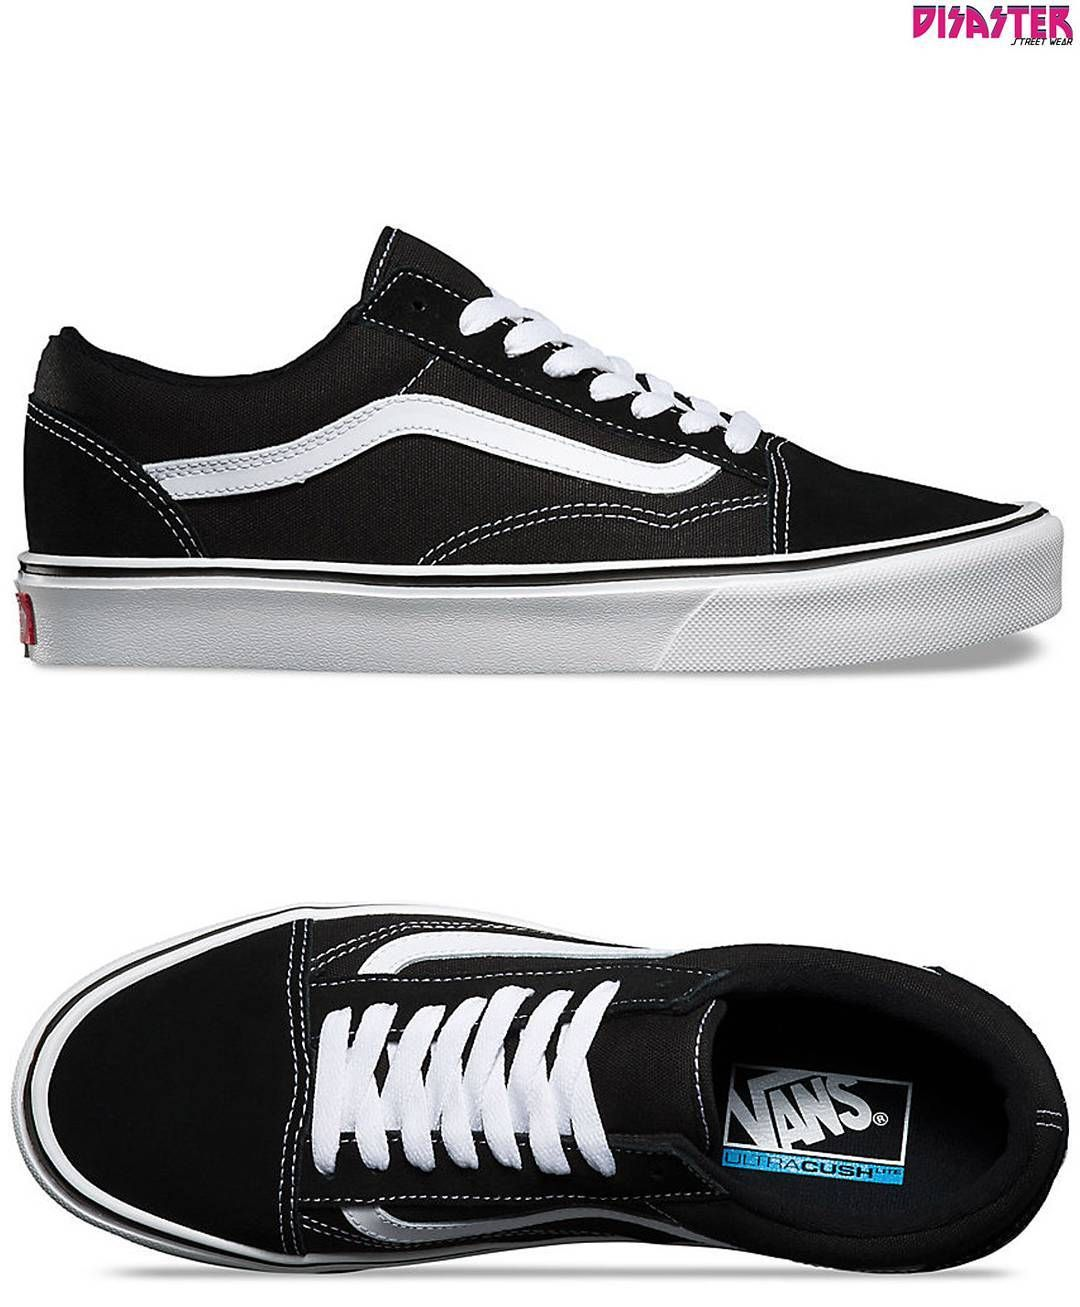 vans old skool 24